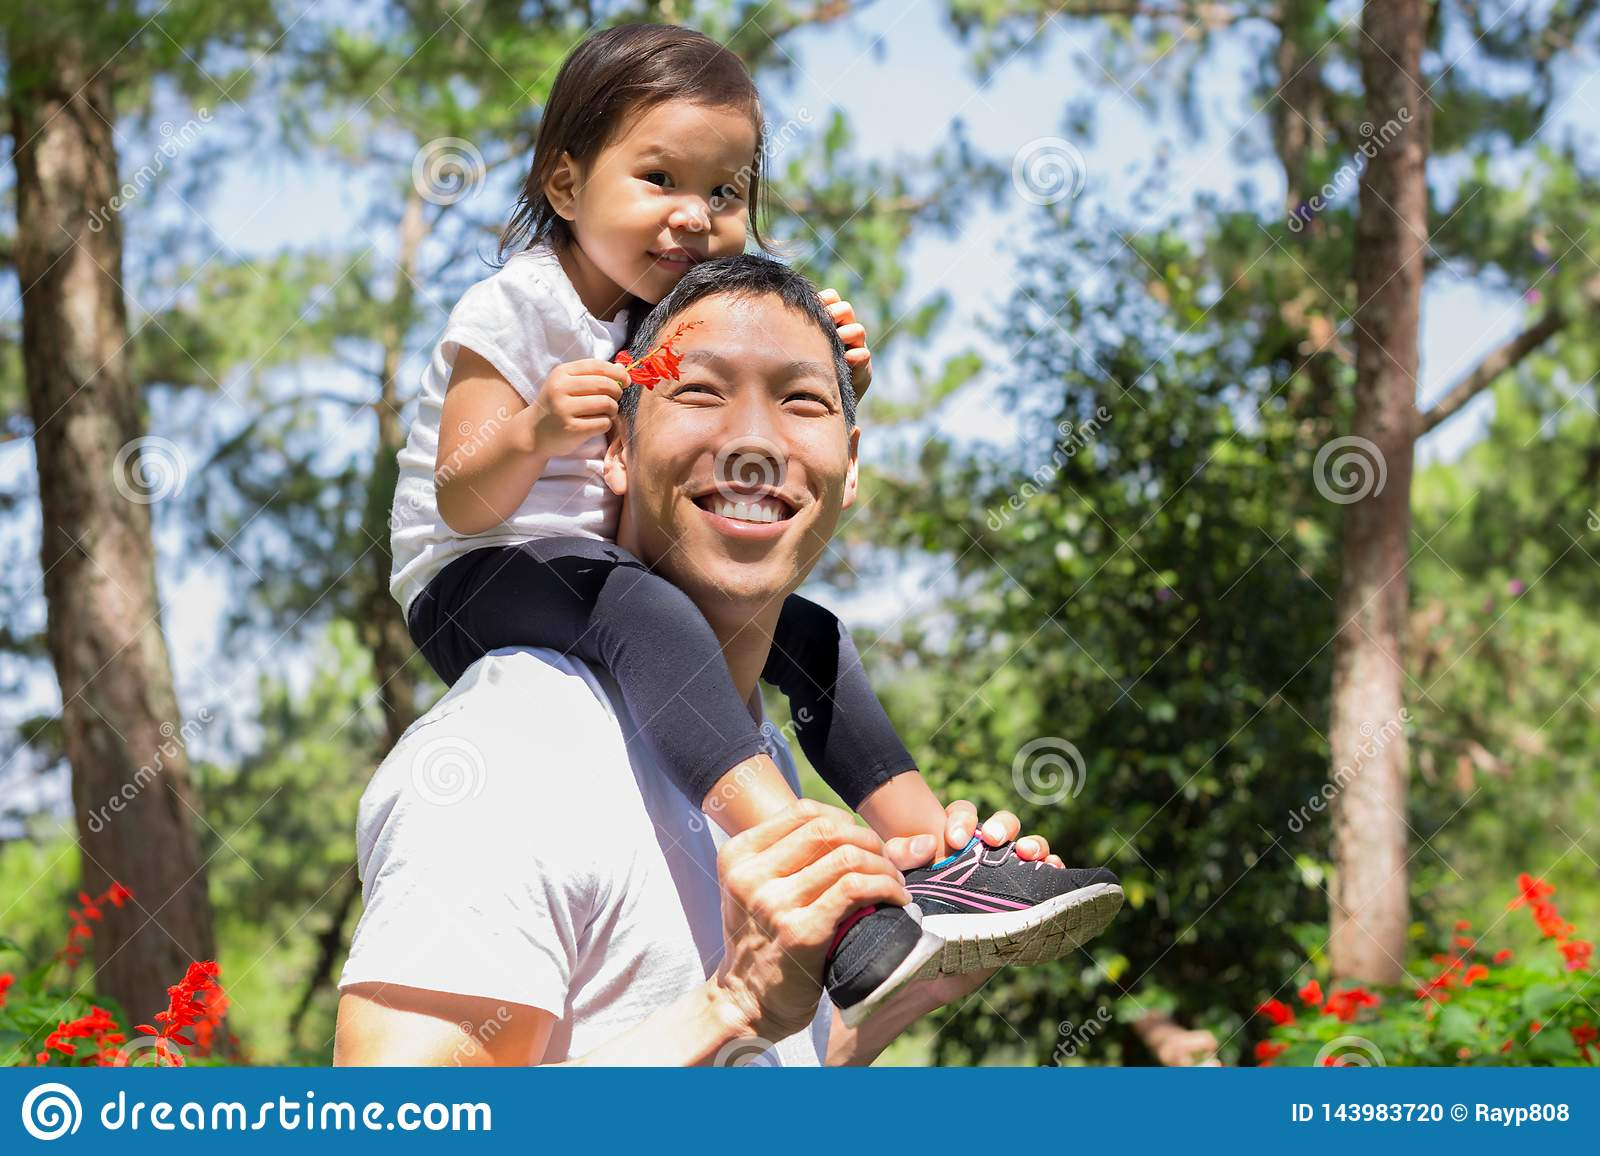 Happy father and child laughing and playing together, caring daughter on his back at a outdoor forest park